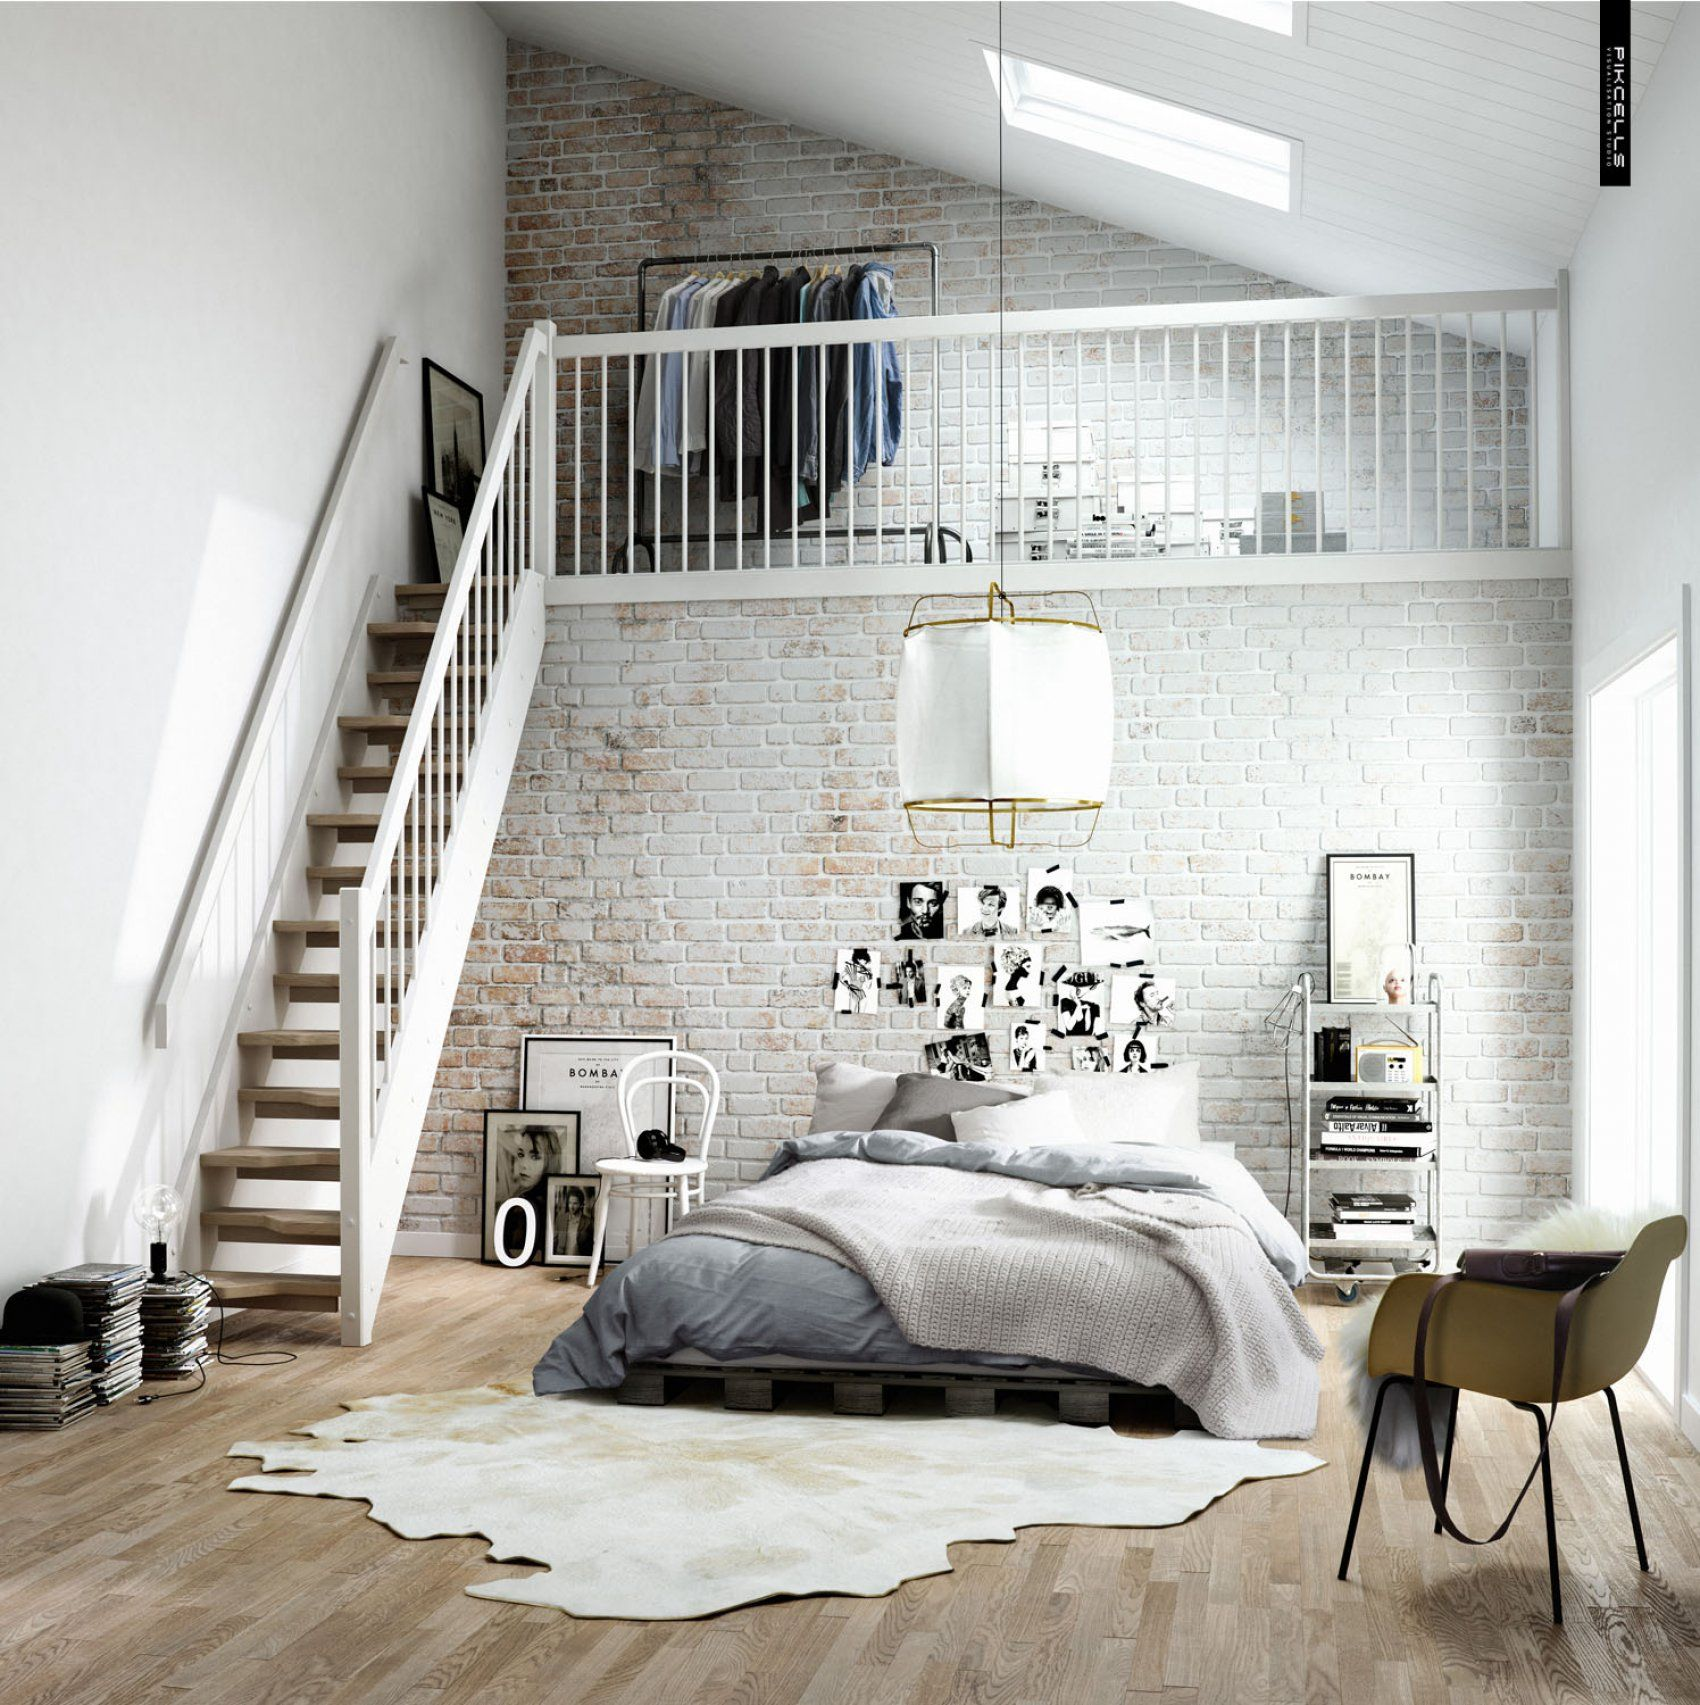 Wonderful Loft Room Ideas Part - 6: What A Gorgeous Loft-style Bedroom. I Particularly Love The Whitewashed  Exposed Brick Walls And The Low-lying Mattress Bed.